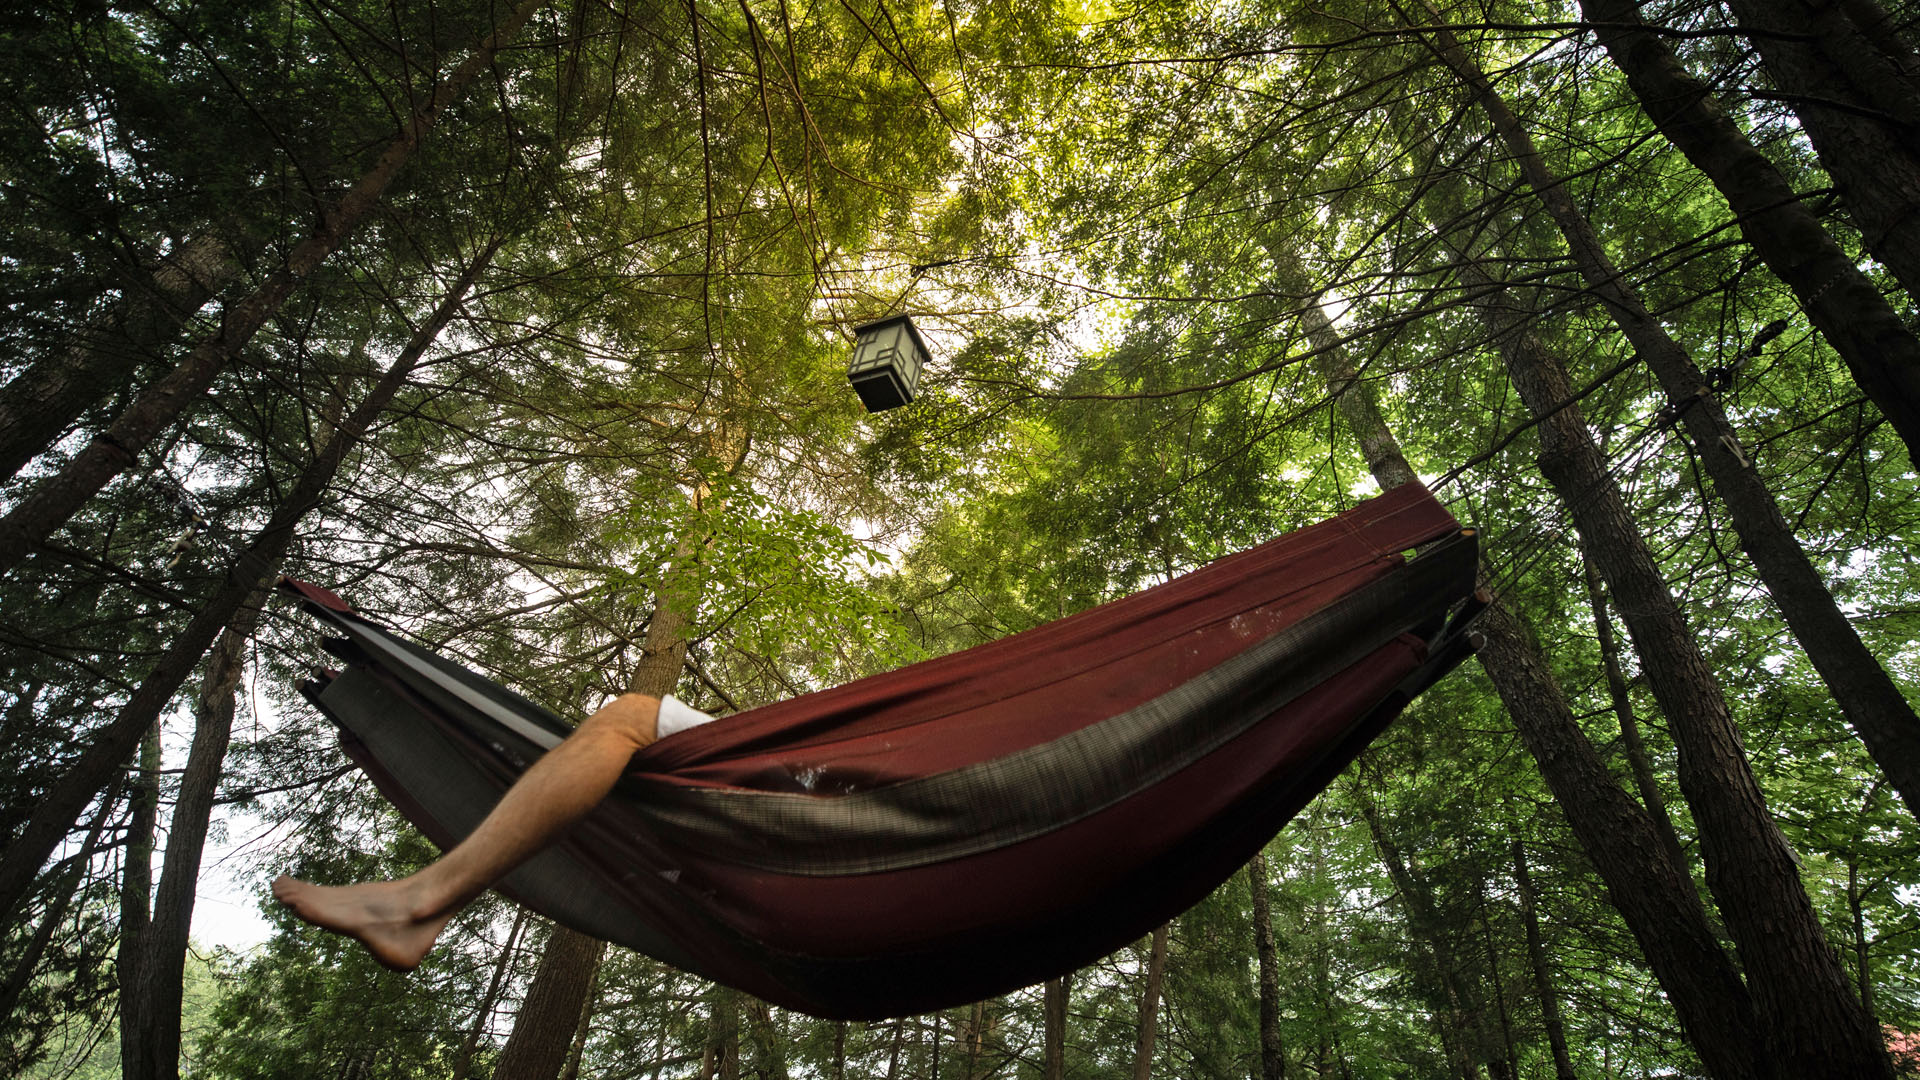 A man sunbathing in a hammock in the forest near Scandinave Spa Tremblant.